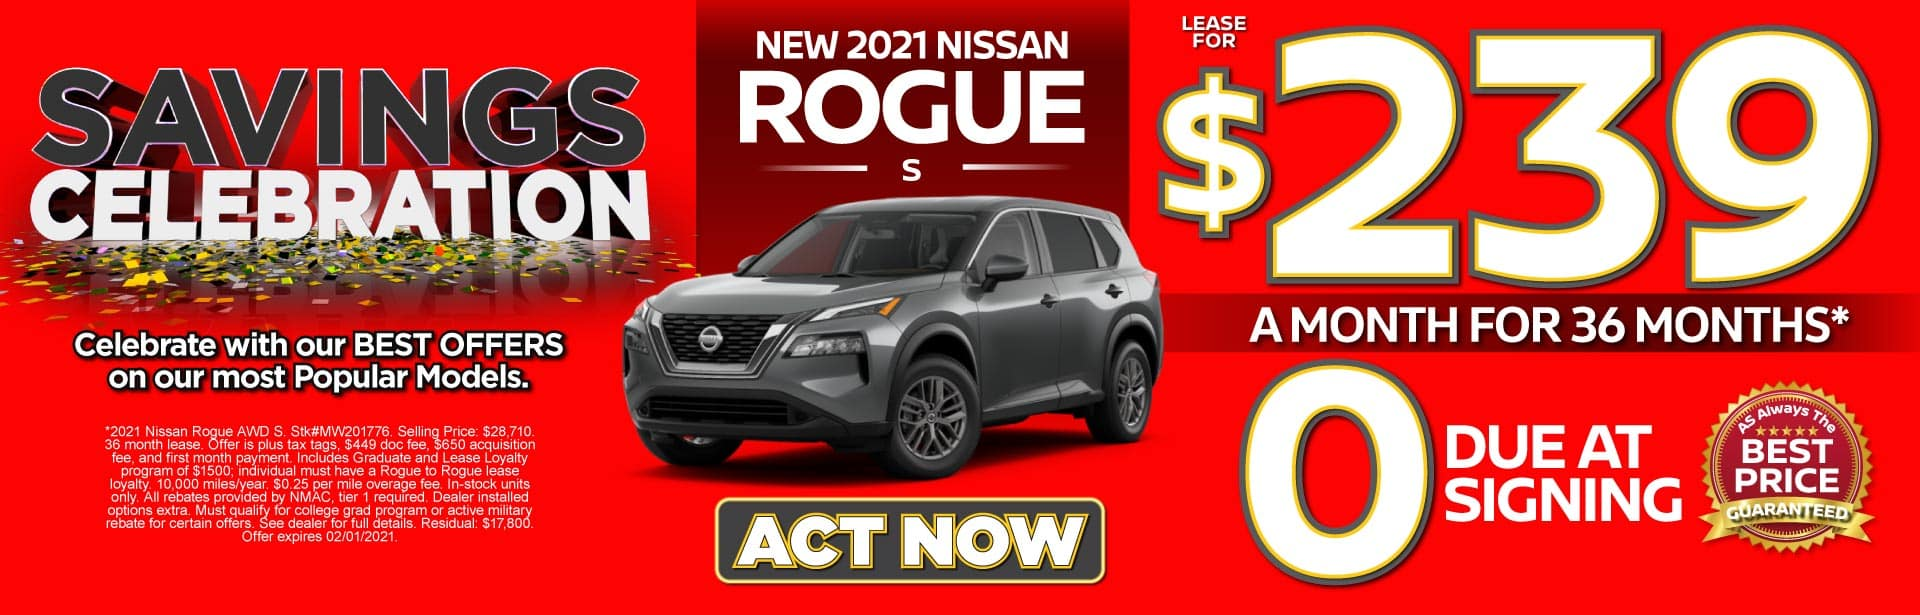 2021 Nissan Rogue S $239 a month for 36 months* ZERO due at signing. Act Now.